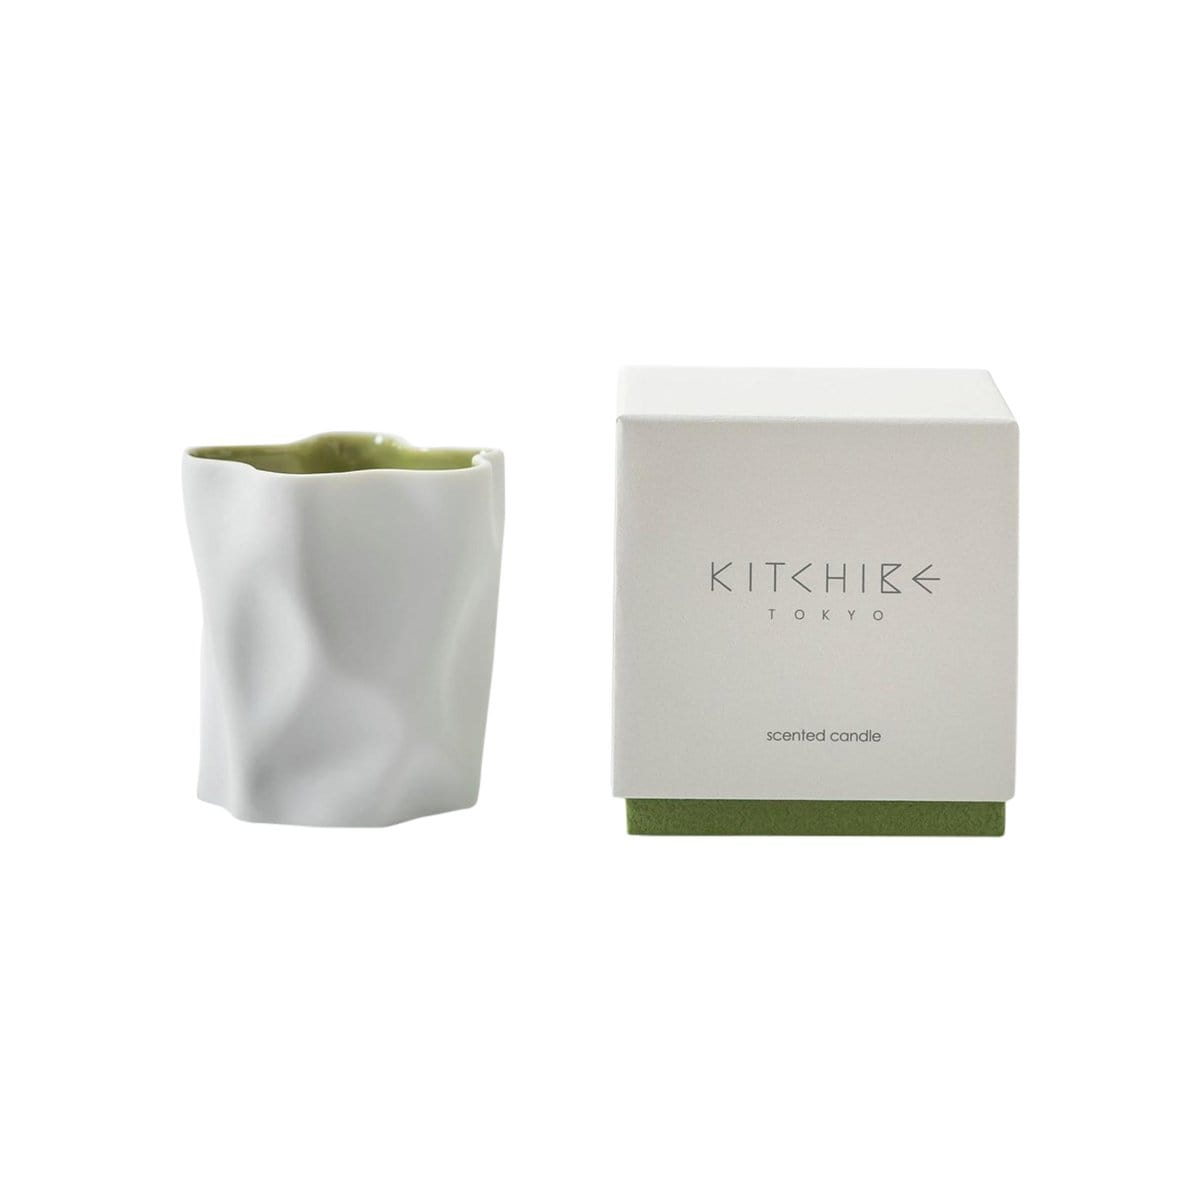 Kitchibe Candles, Diffusers + Incense Matcha Crinkle Candle